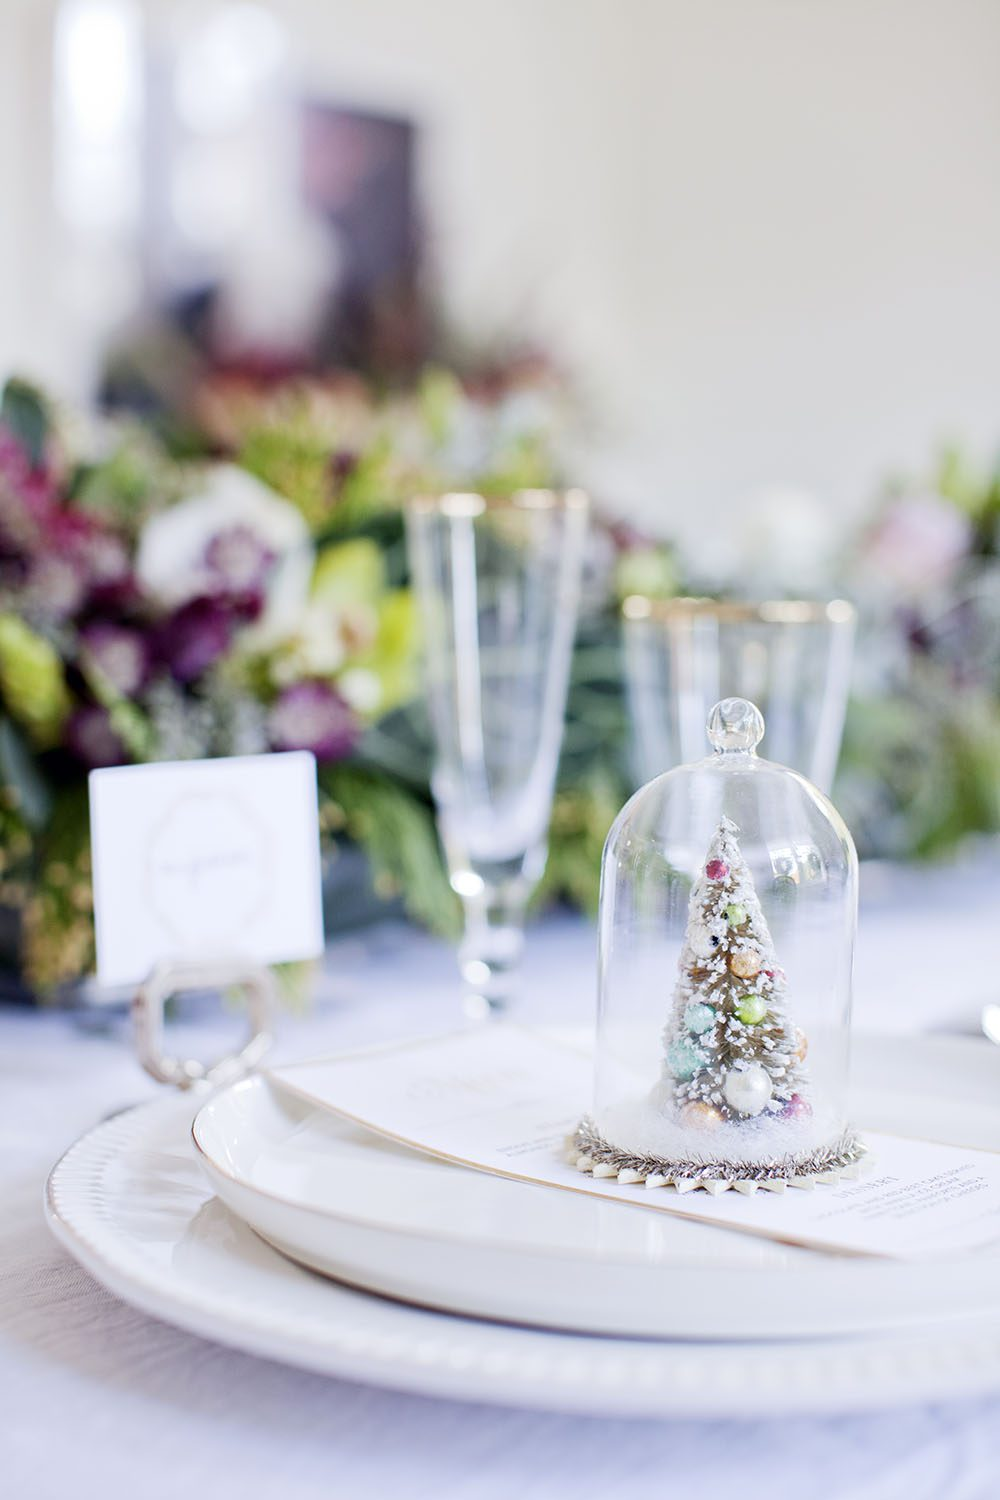 jillian-harris-christmas-table-5